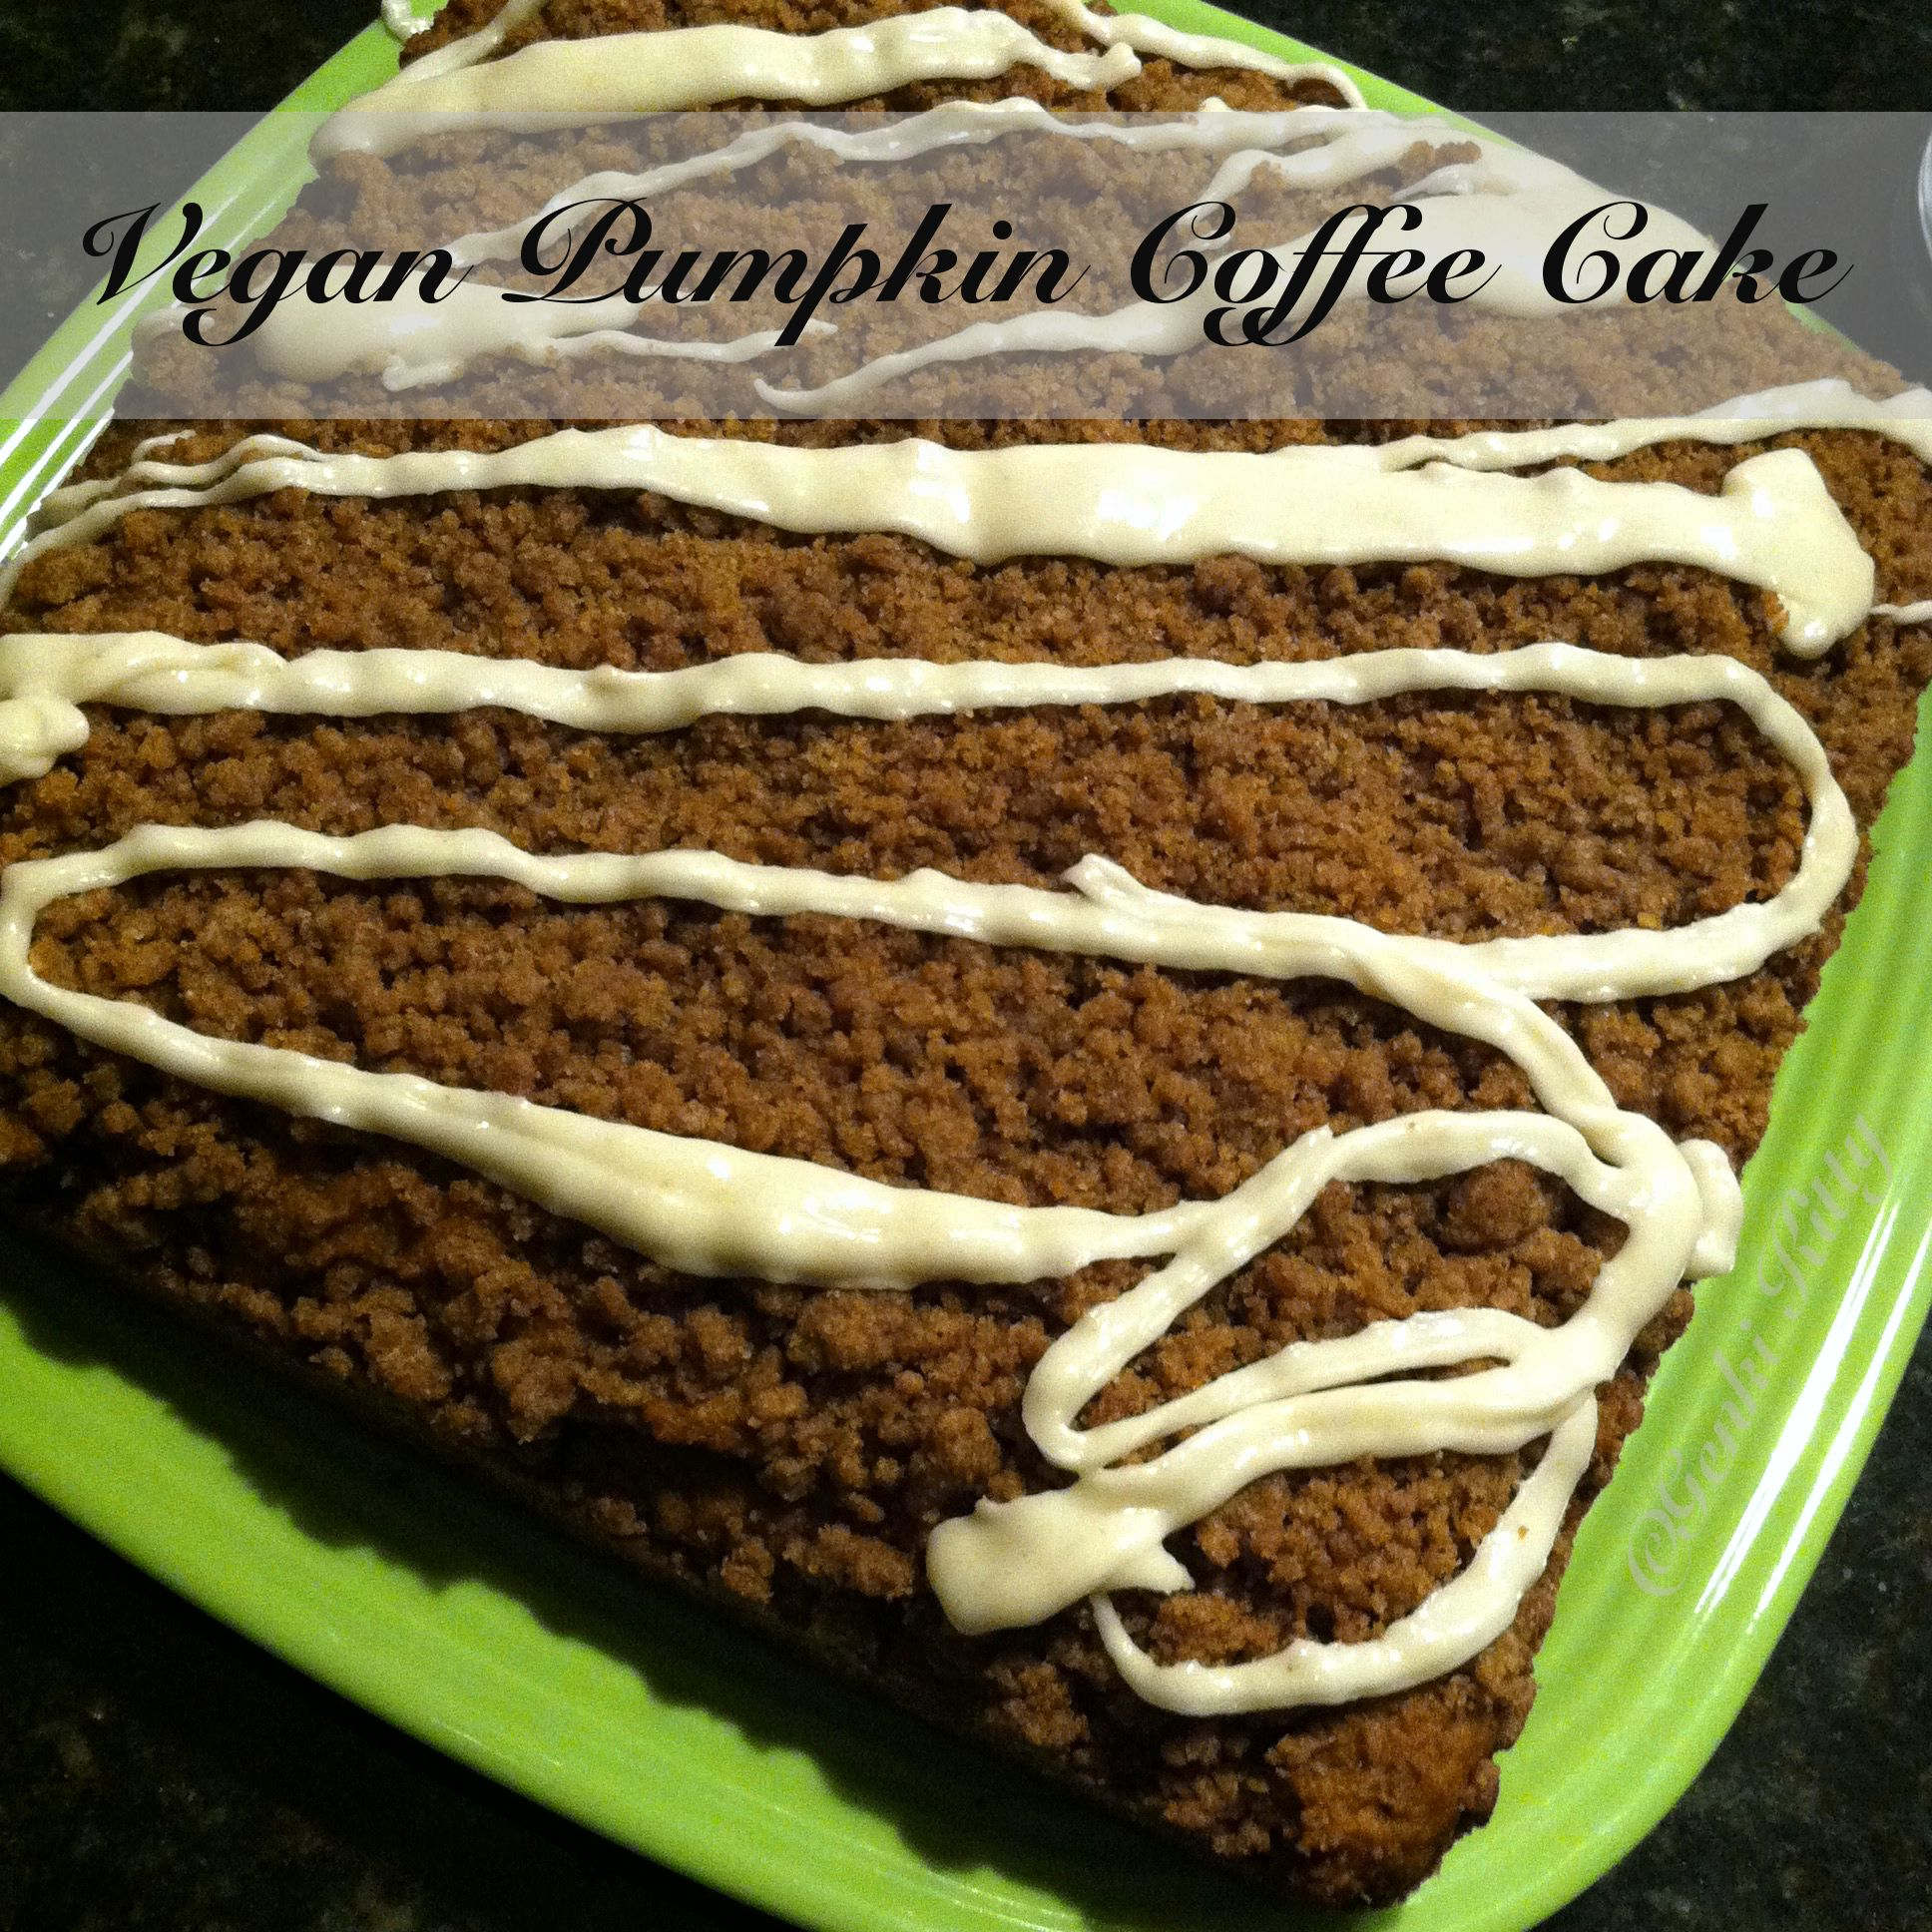 Vegan Pumpkin Coffee Cake takes a little time in the